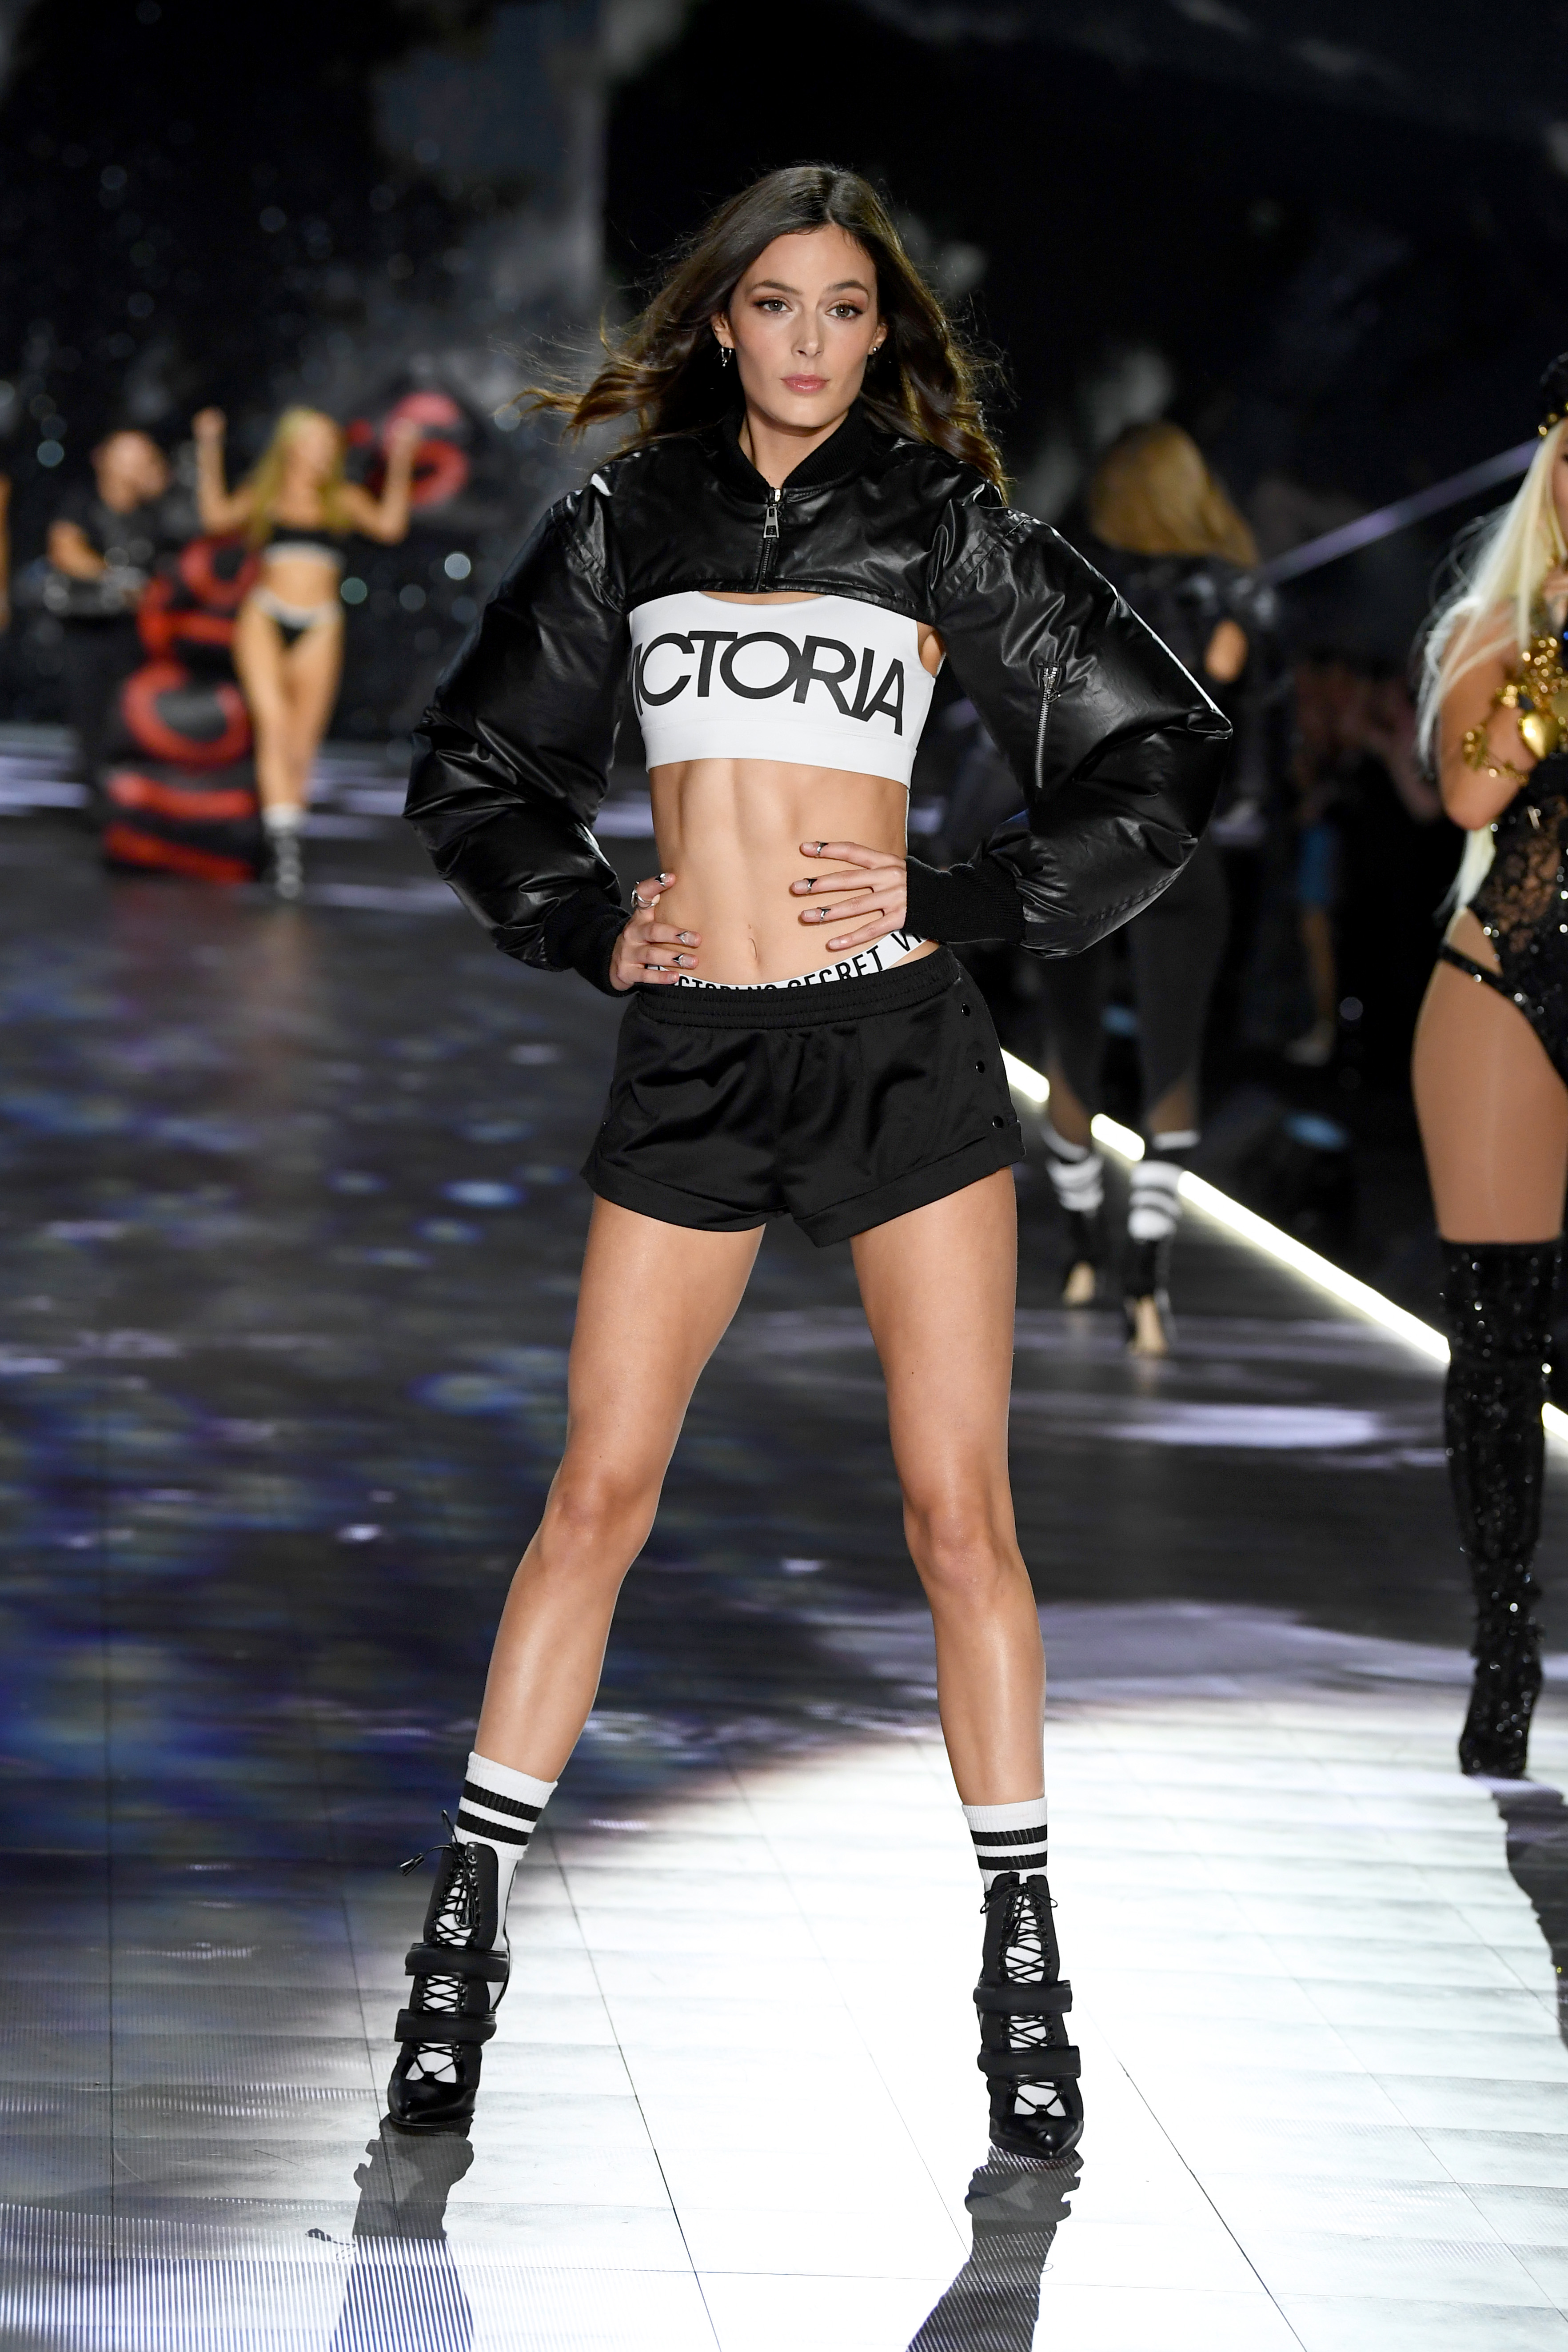 Sadie Newman walks the runway during the 2018 Victoria's Secret Fashion Show at Pier 94 on November 8, 2018, in New York City. (Getty Images)